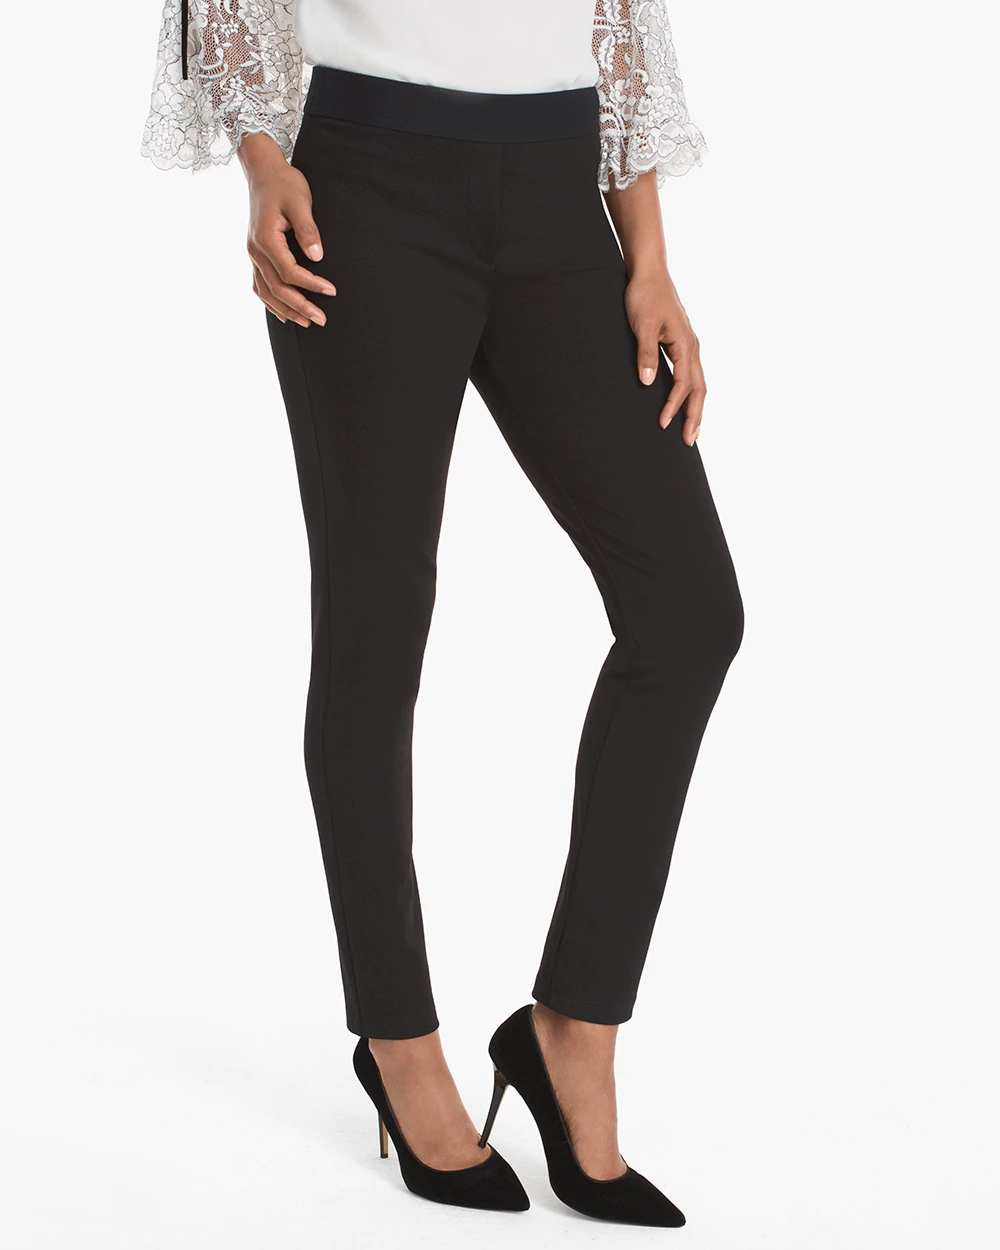 BODY COMFORT SIDE-ZIP SKINNY ANKLE PANTS | Hermosaz